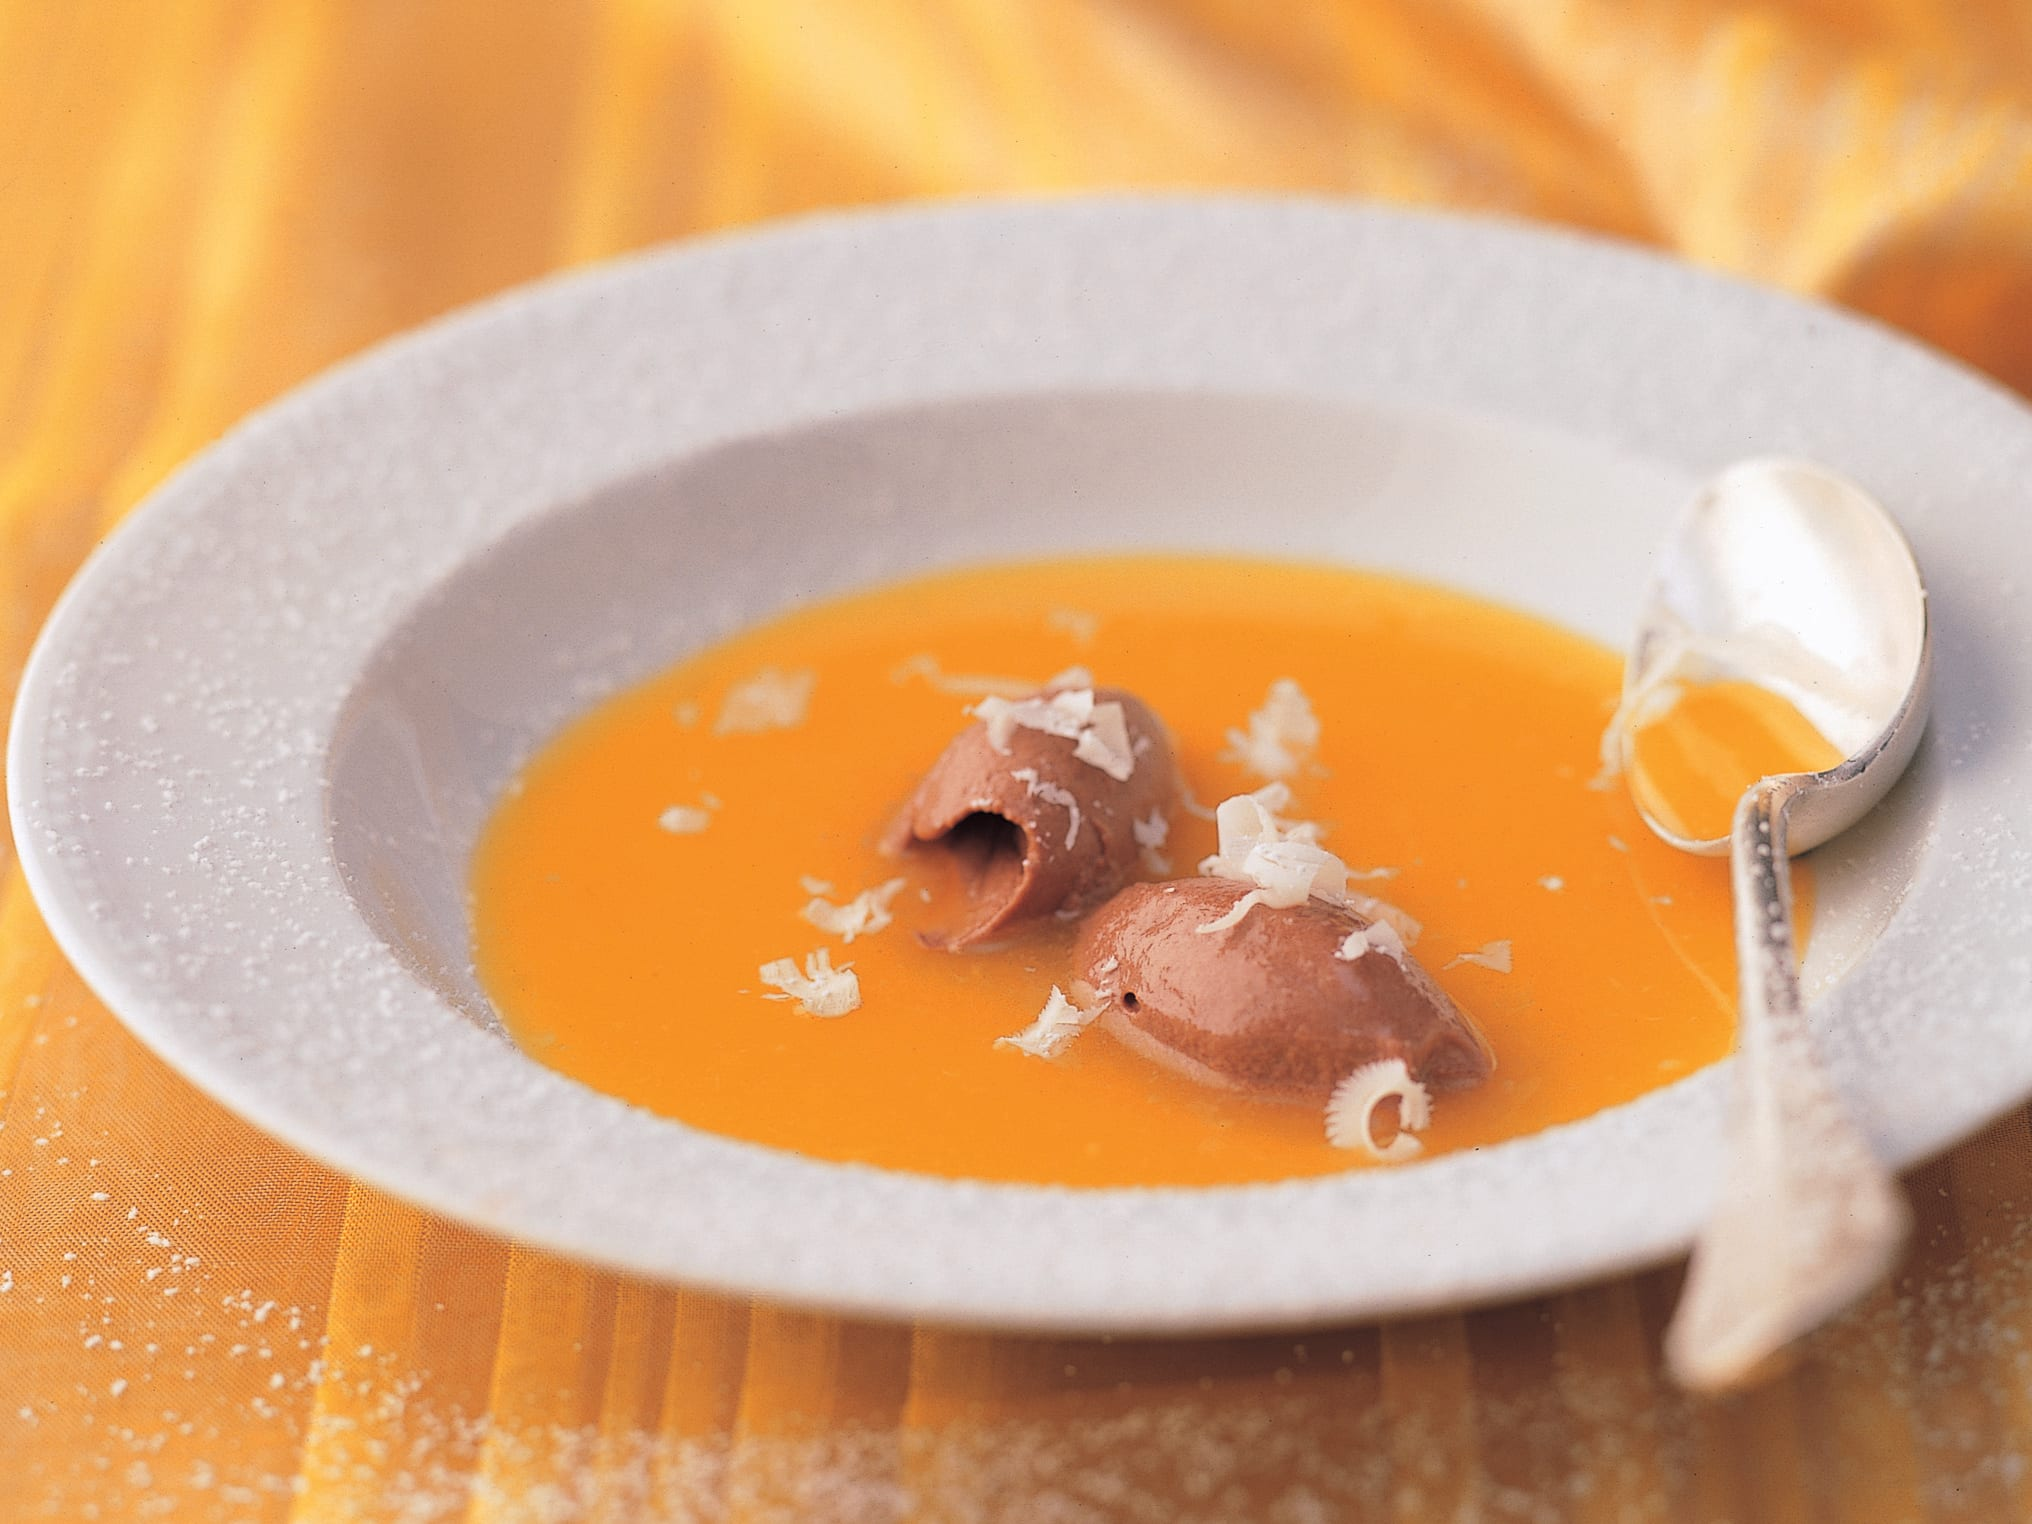 Soupe à l'orange garnie de mousse au chocolat